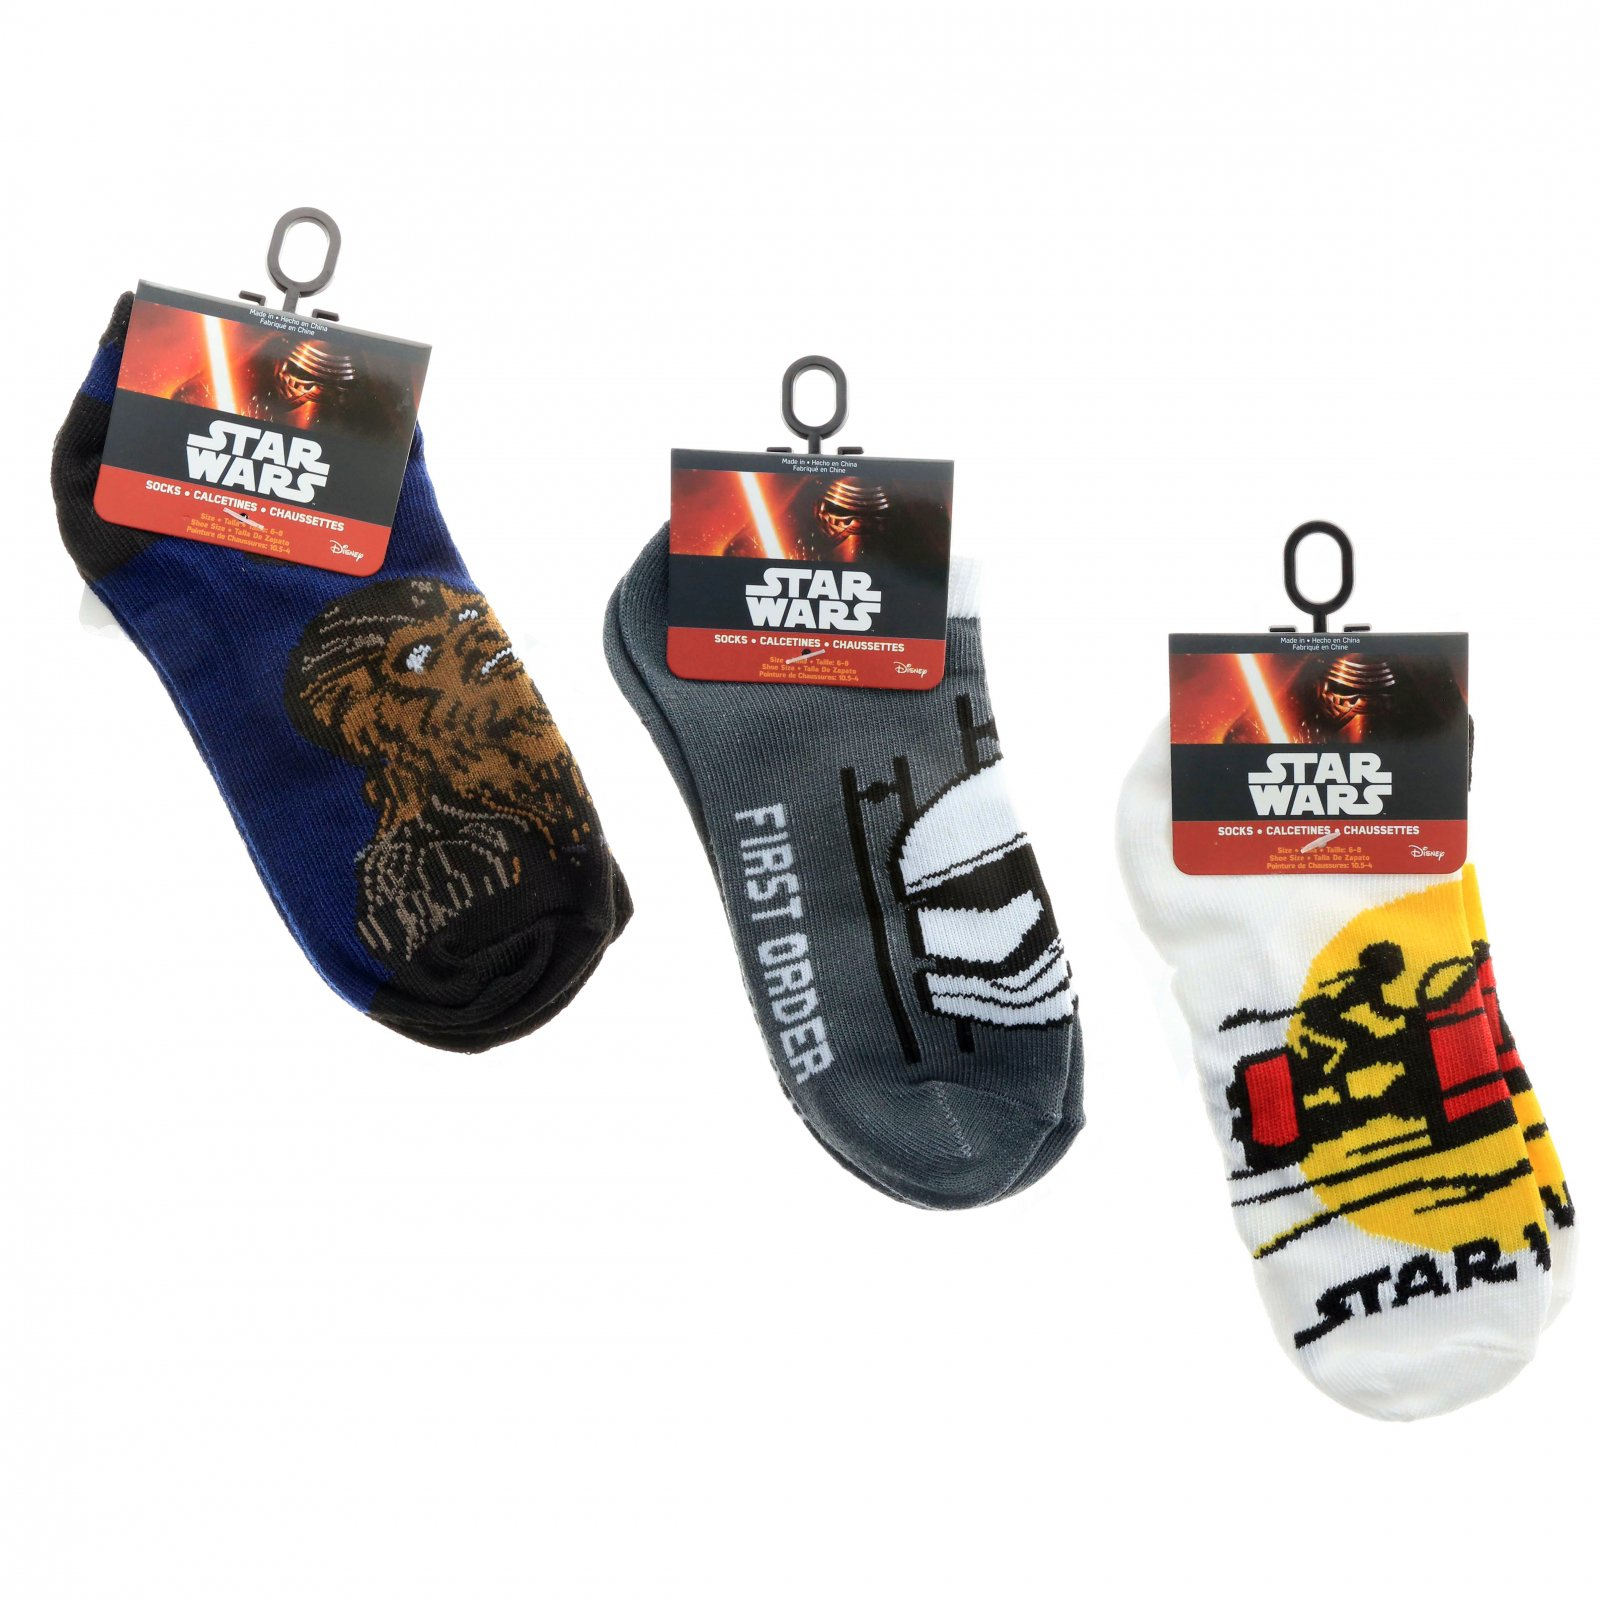 Star Wars Kids Ankle Socks Size 6-8 Boys Clothes Chewbacca Stormtrooper Jedi 3pk